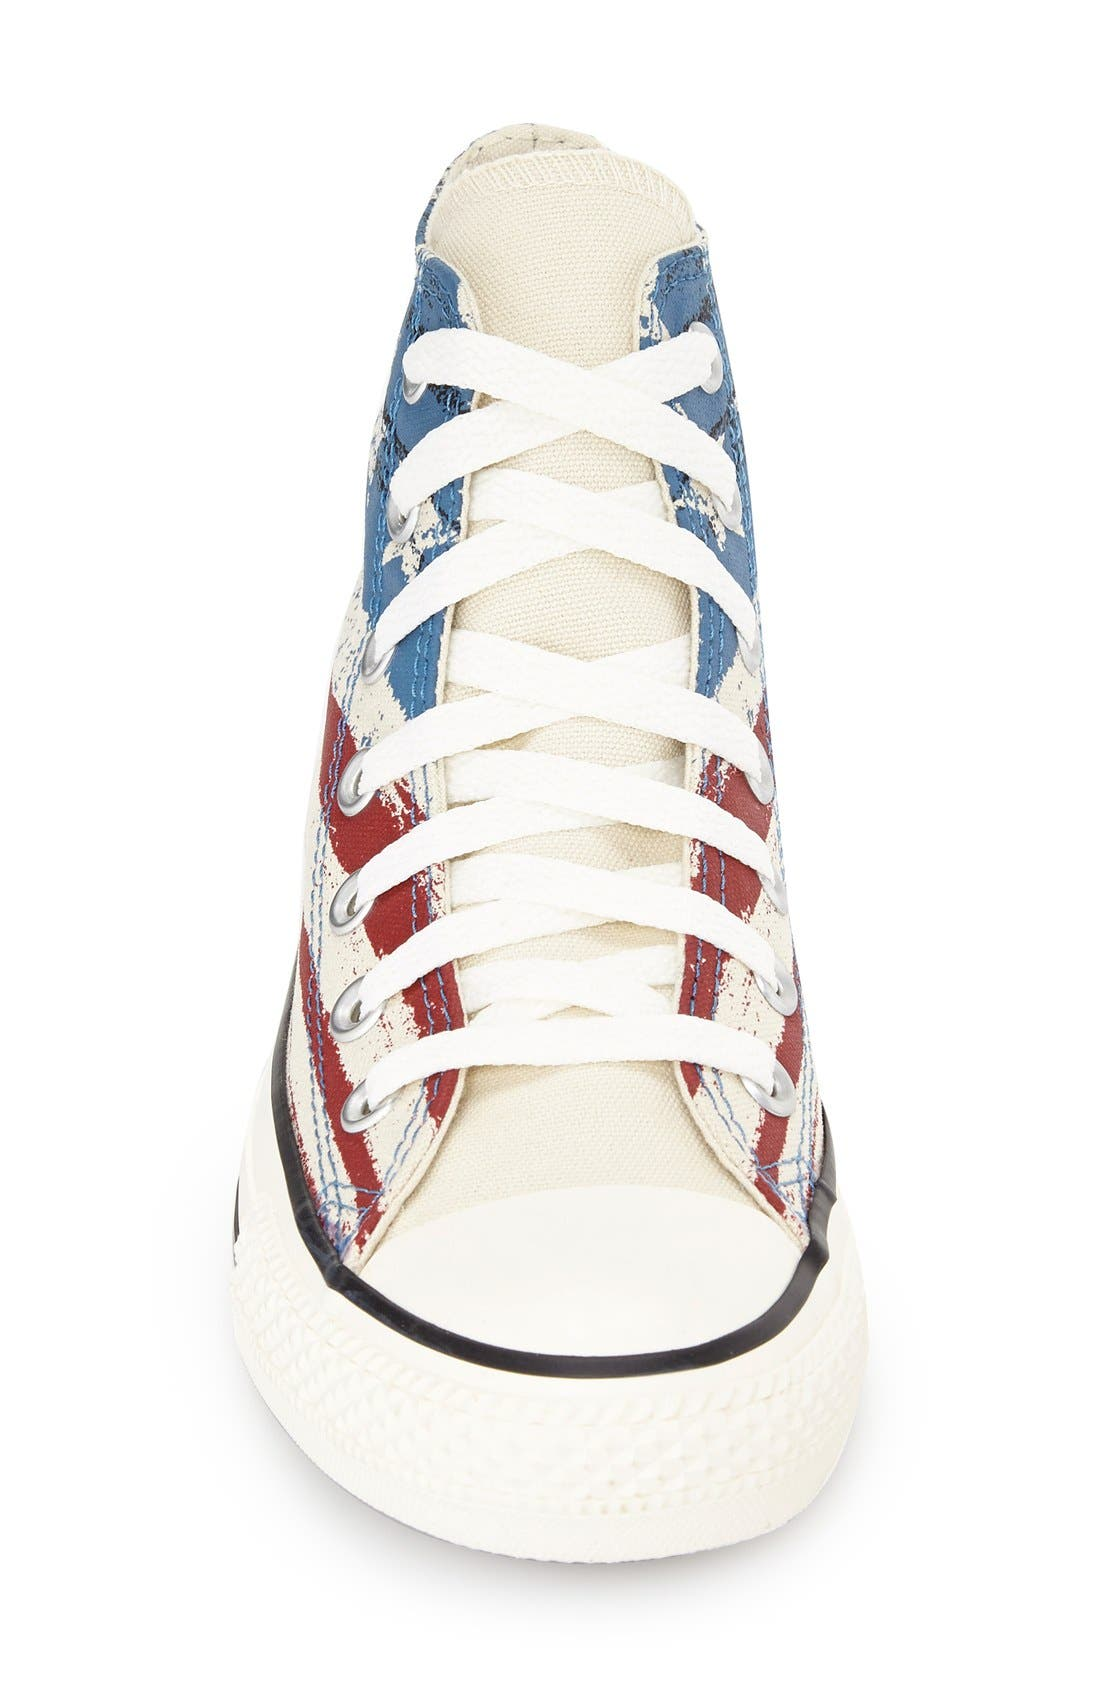 Alternate Image 3  - Converse Chuck Taylor® Flag Print High Top Sneaker (Women)